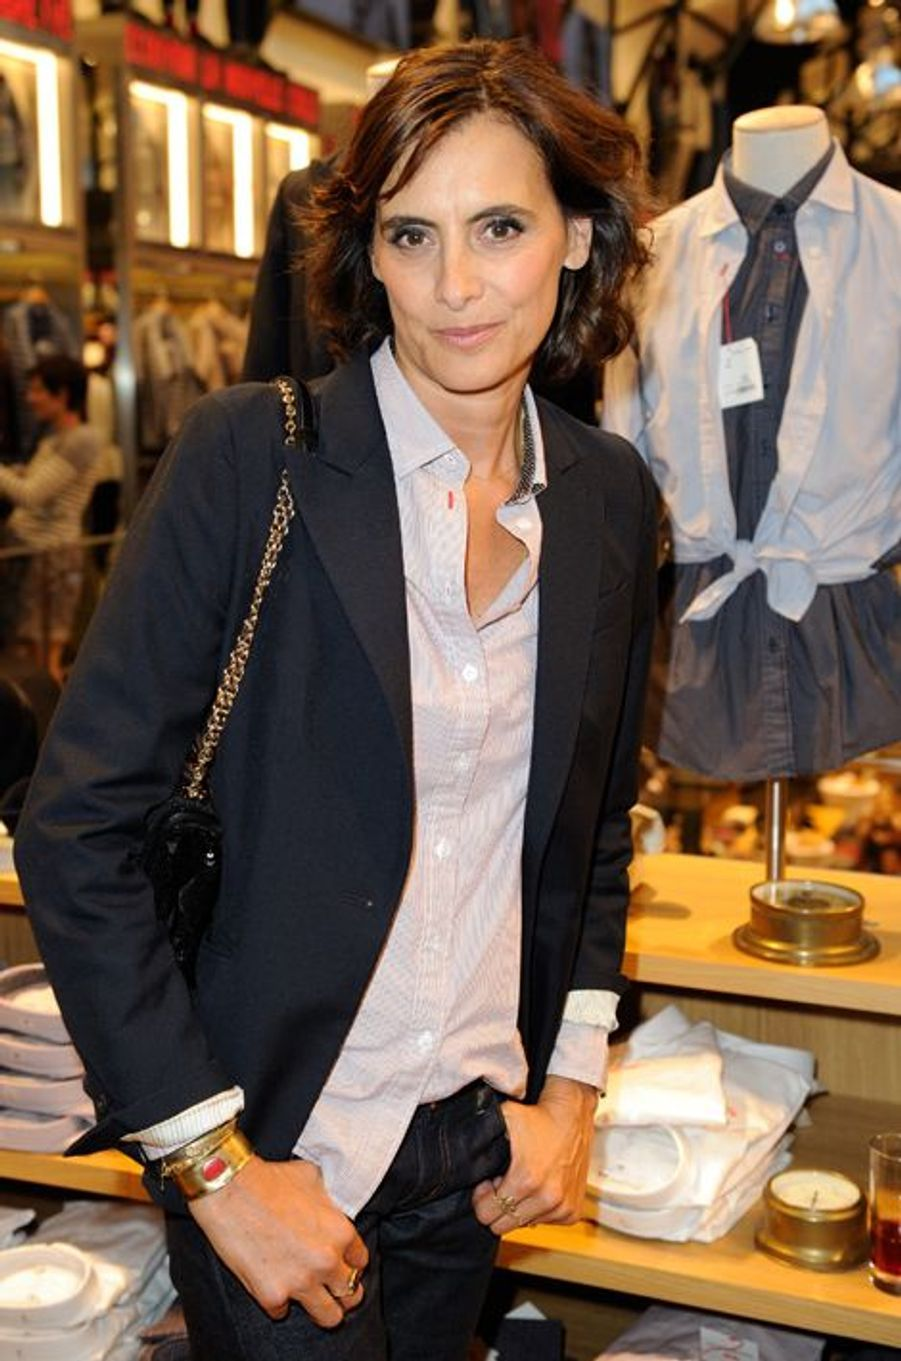 Inès de la Fressange lors du lancement de sa collection Uniqlo à Paris, le 3 septembre 2014.